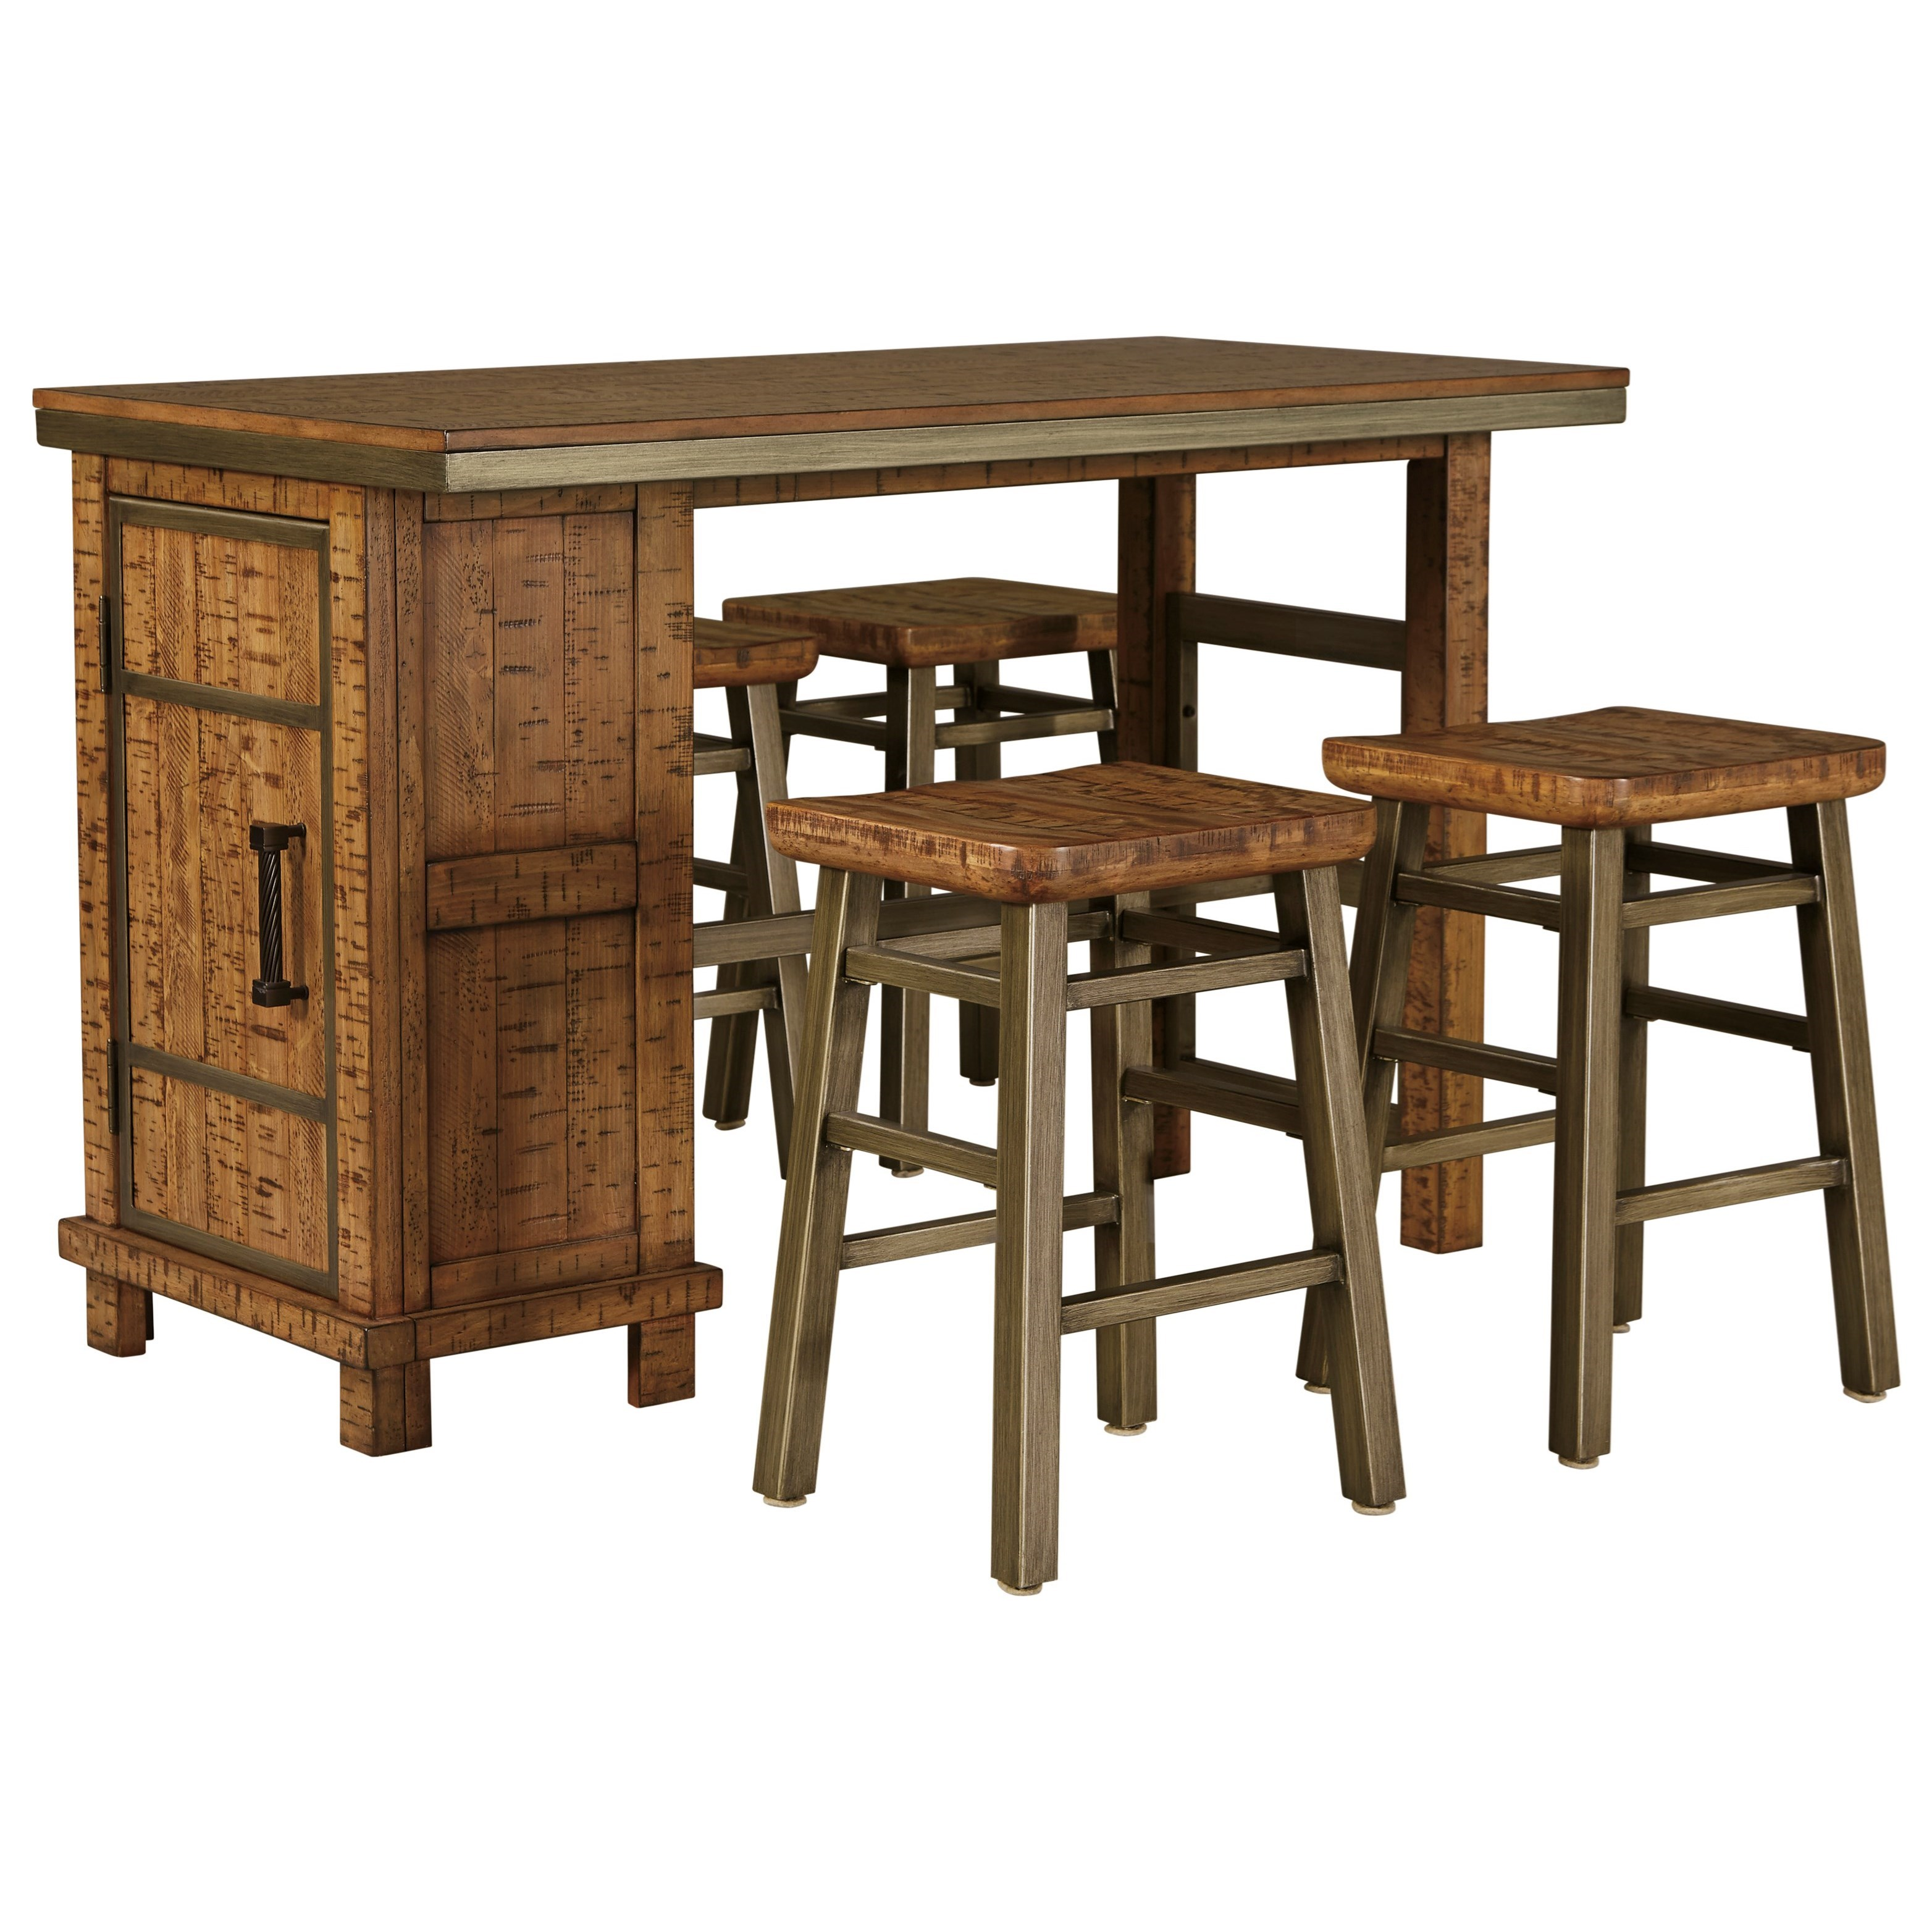 Signature Design By Ashley Furniture Dondie 5 Piece Rectangular Counter Table Set Sam 39 S